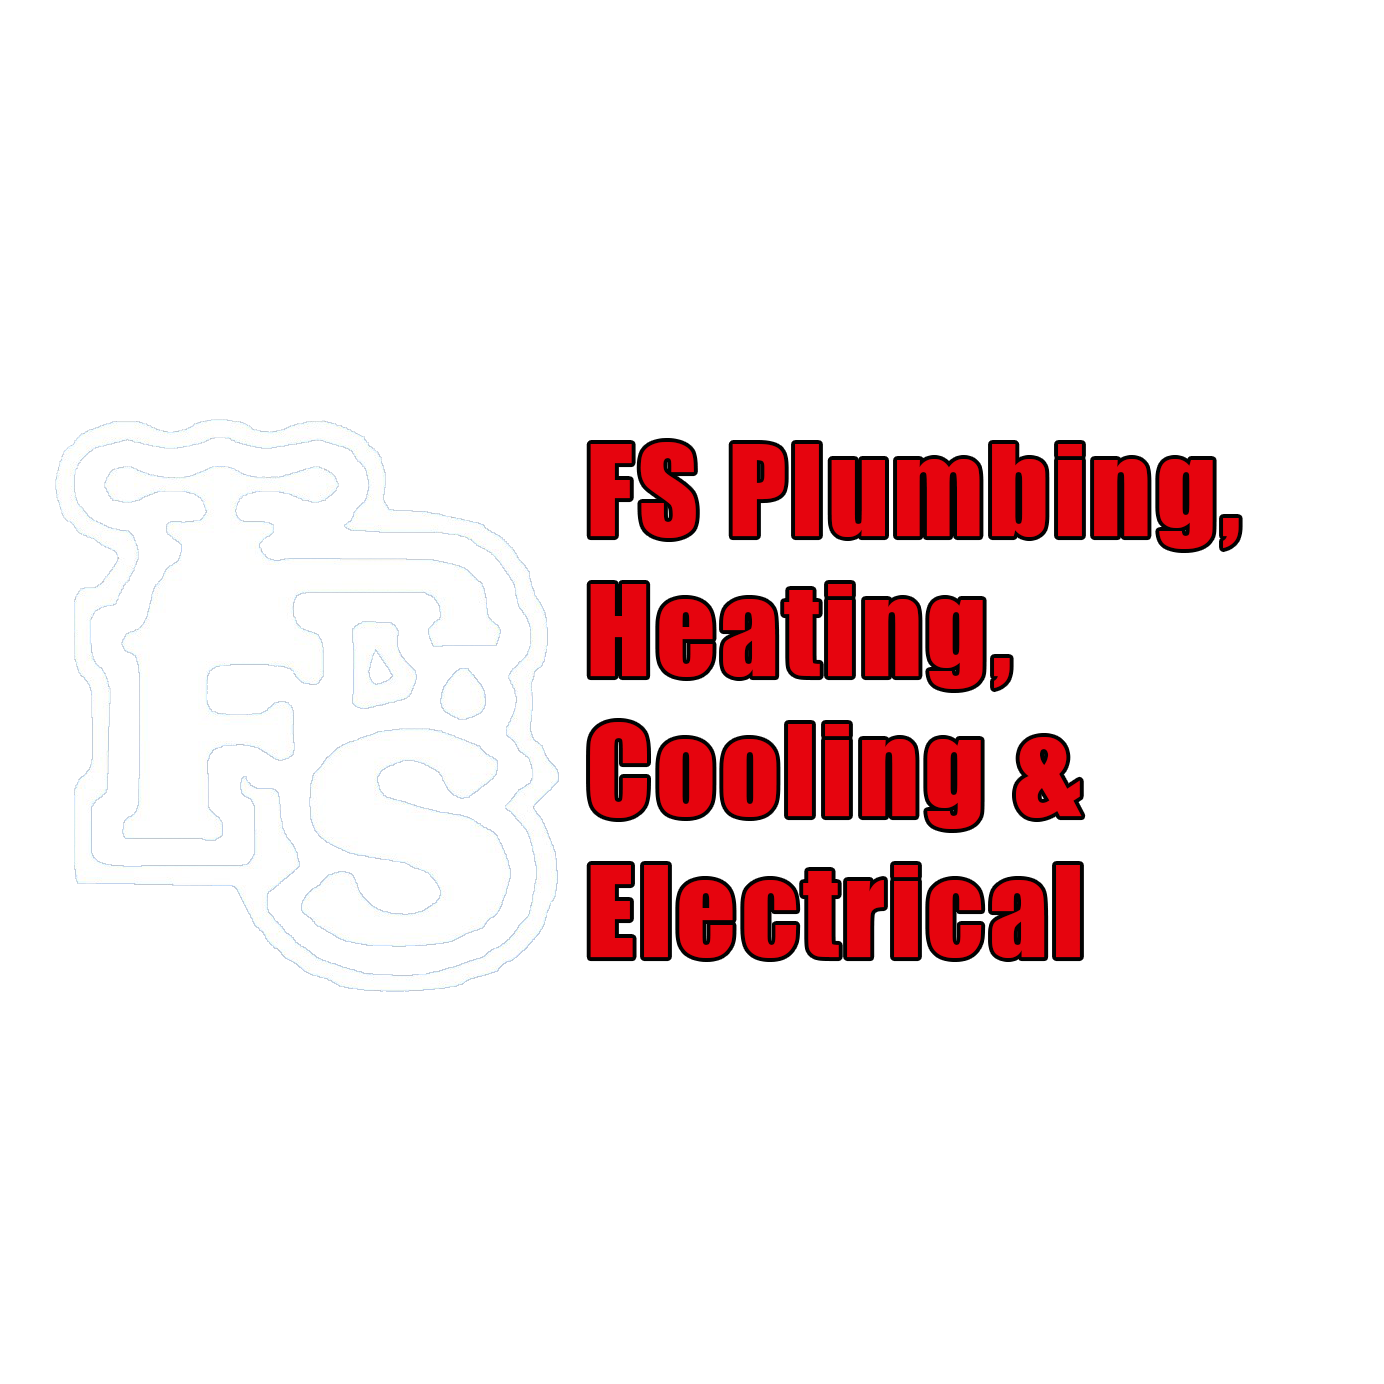 FS Plumbing, Heating, Cooling & Electrical